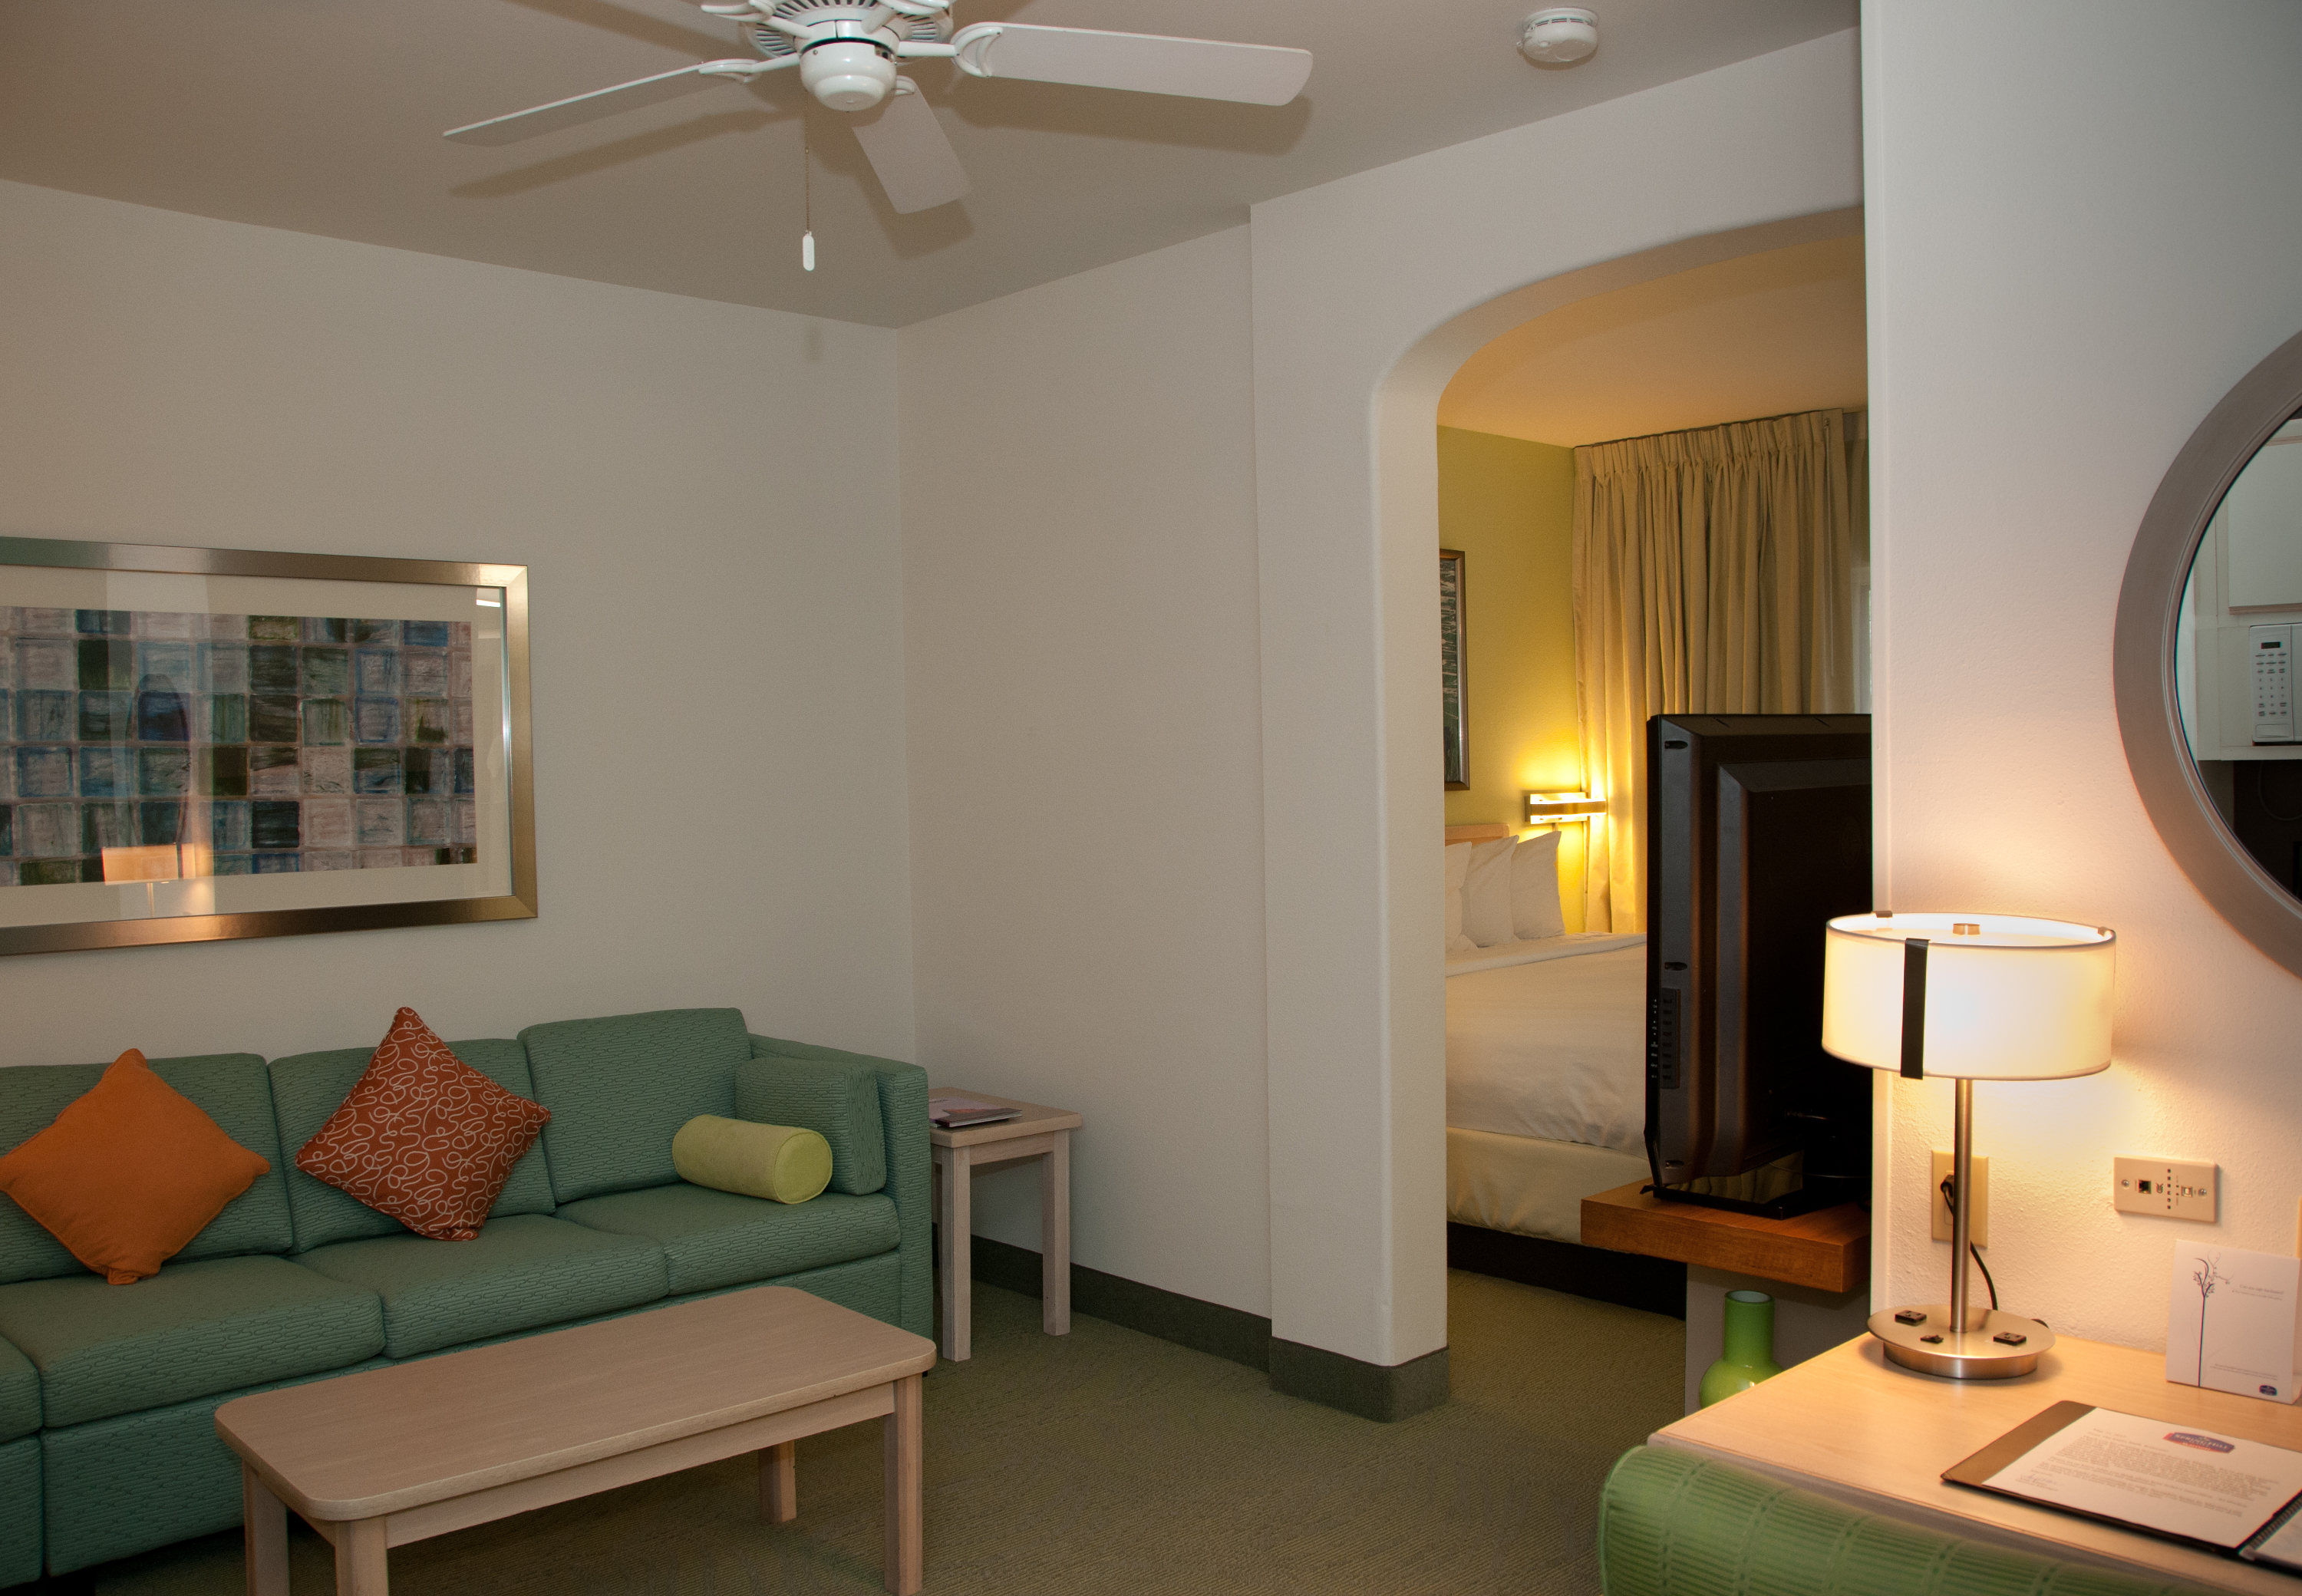 SpringHill Suites by Marriott Las Cruces image 10